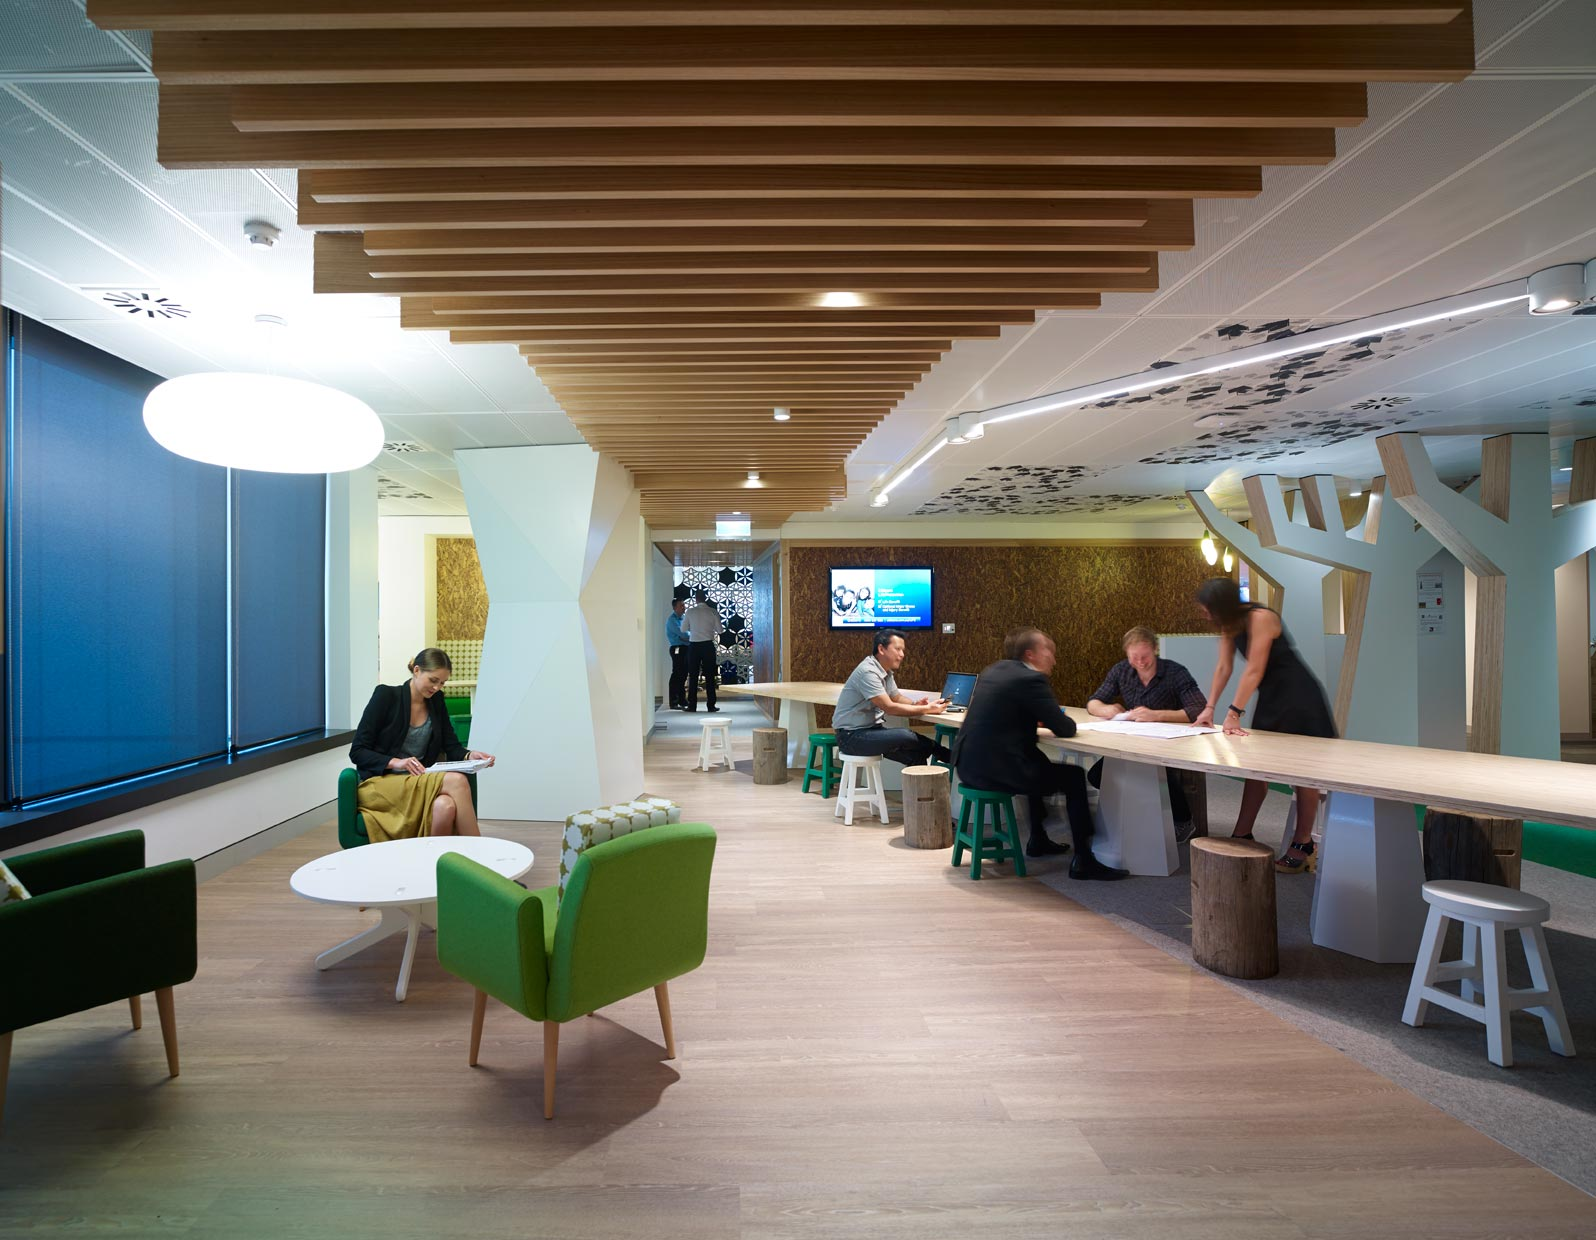 PCG-Lion-High Performance Workplace by PCG